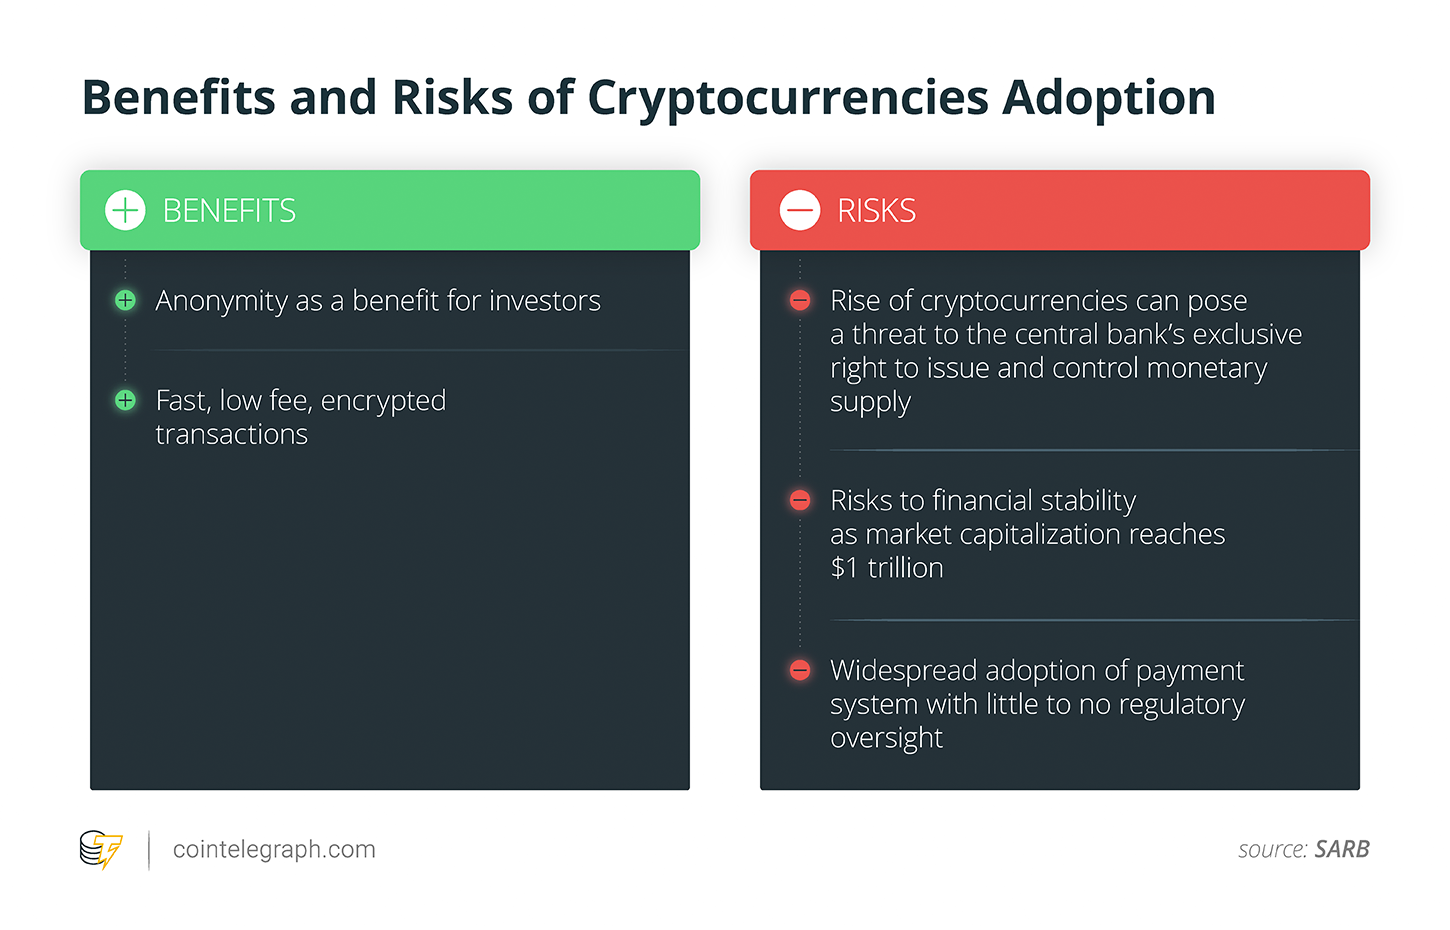 Benefits and Risks of Cryptocurrencies Adoption